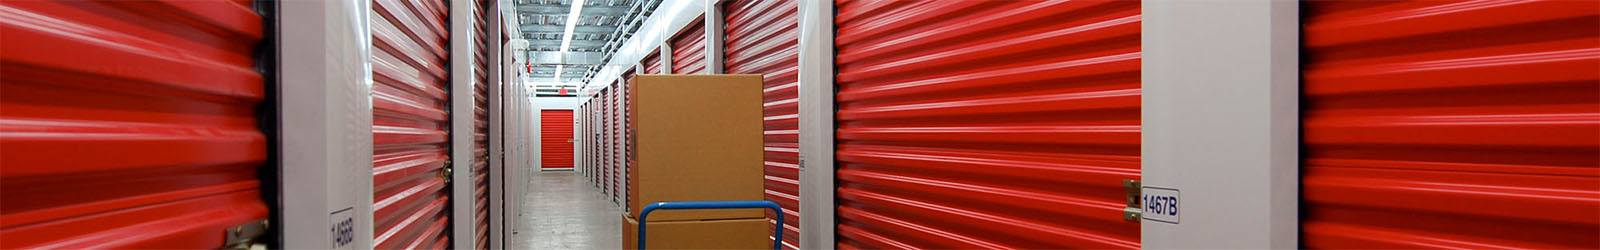 Reviews of self storage in Nanaimo, BC